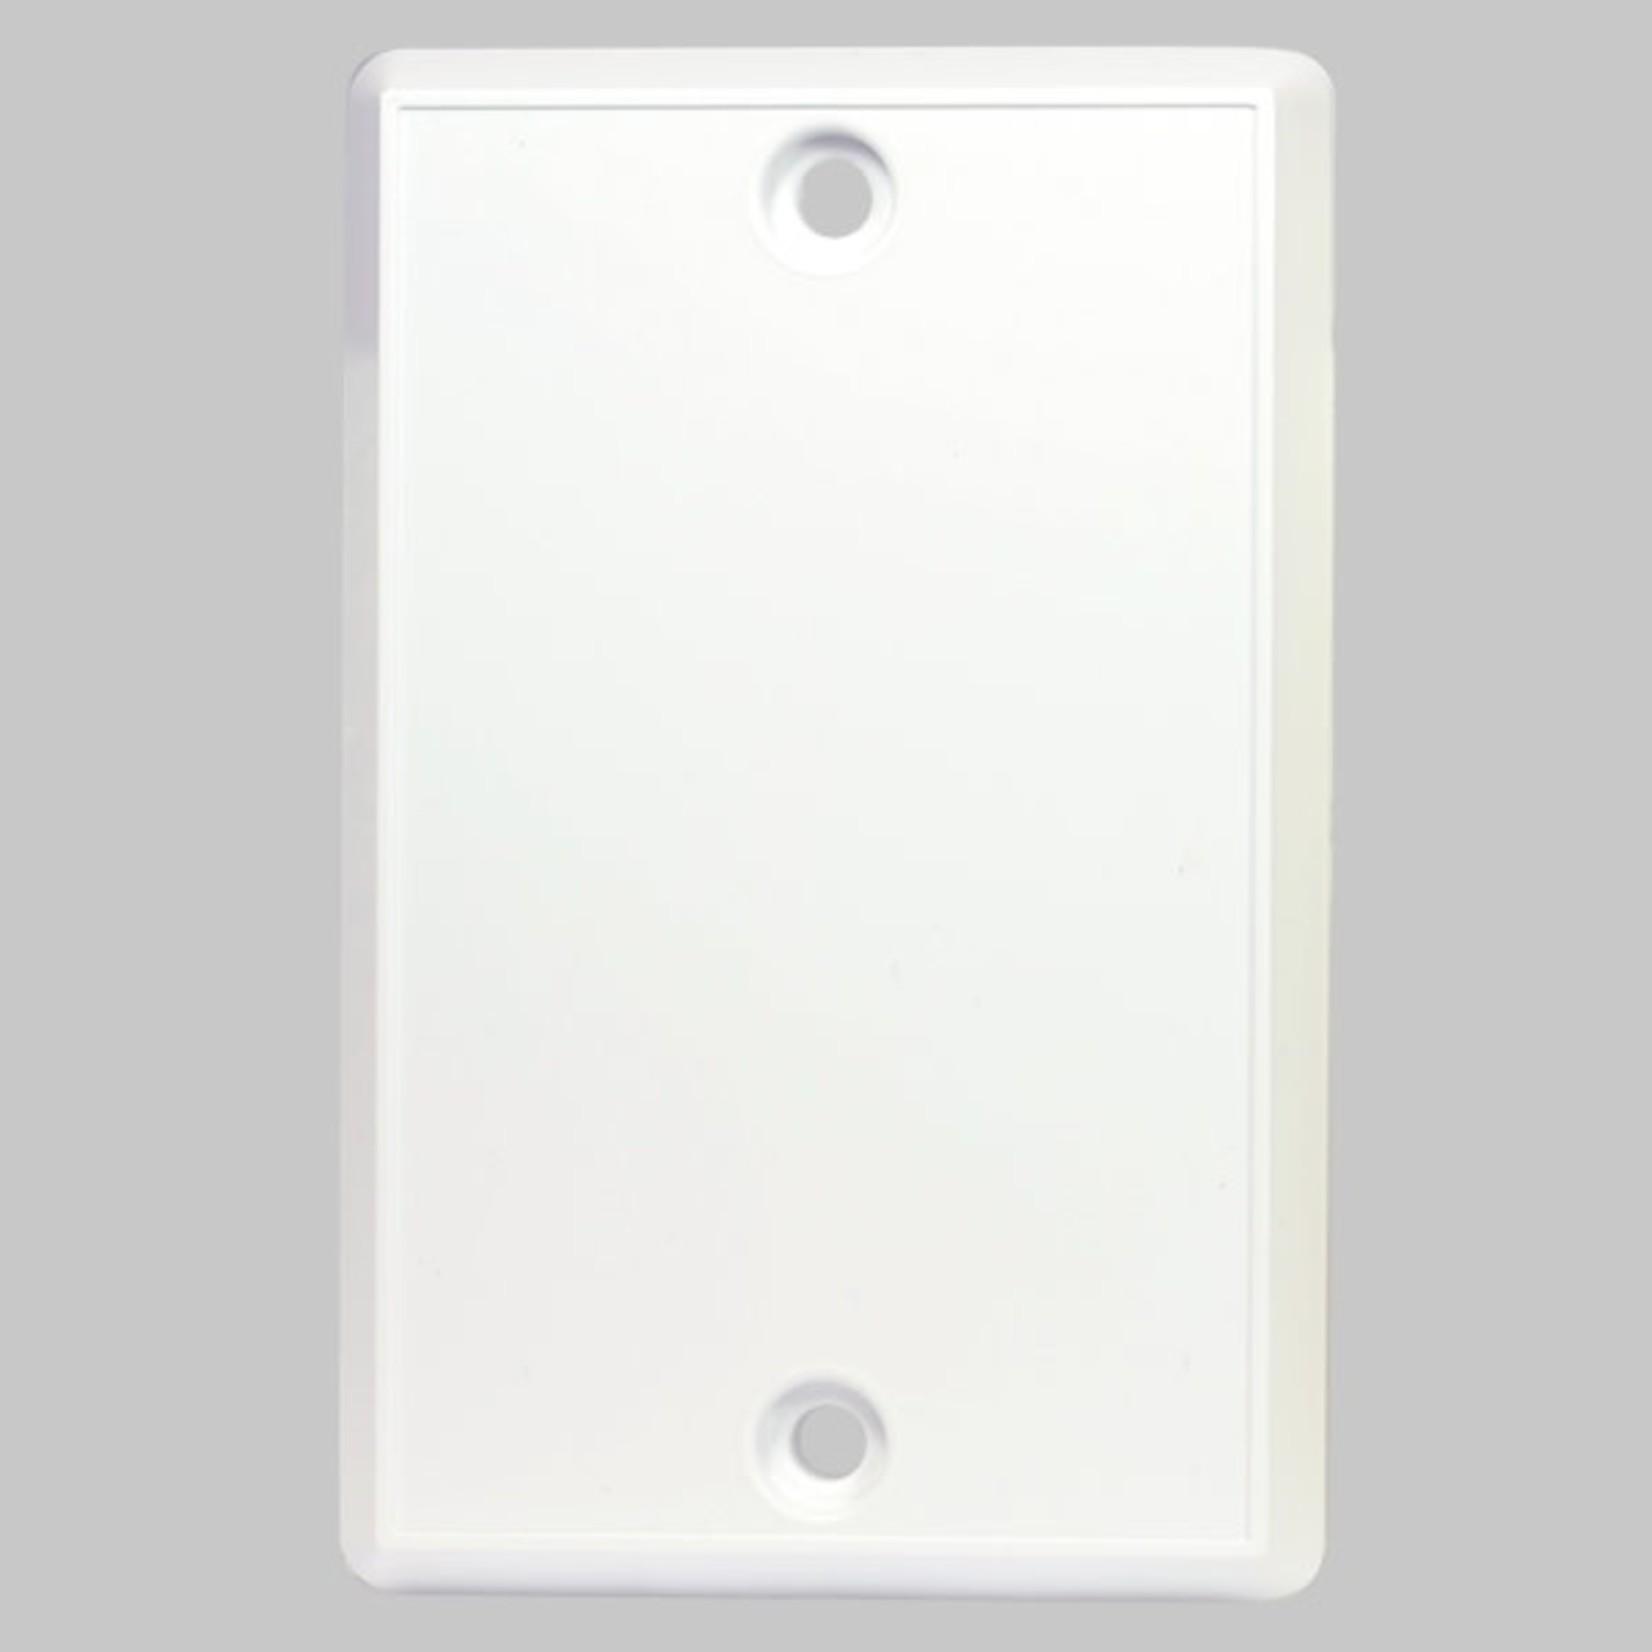 BEAM Central Vacuum Inlet Valve Cover Plate - White